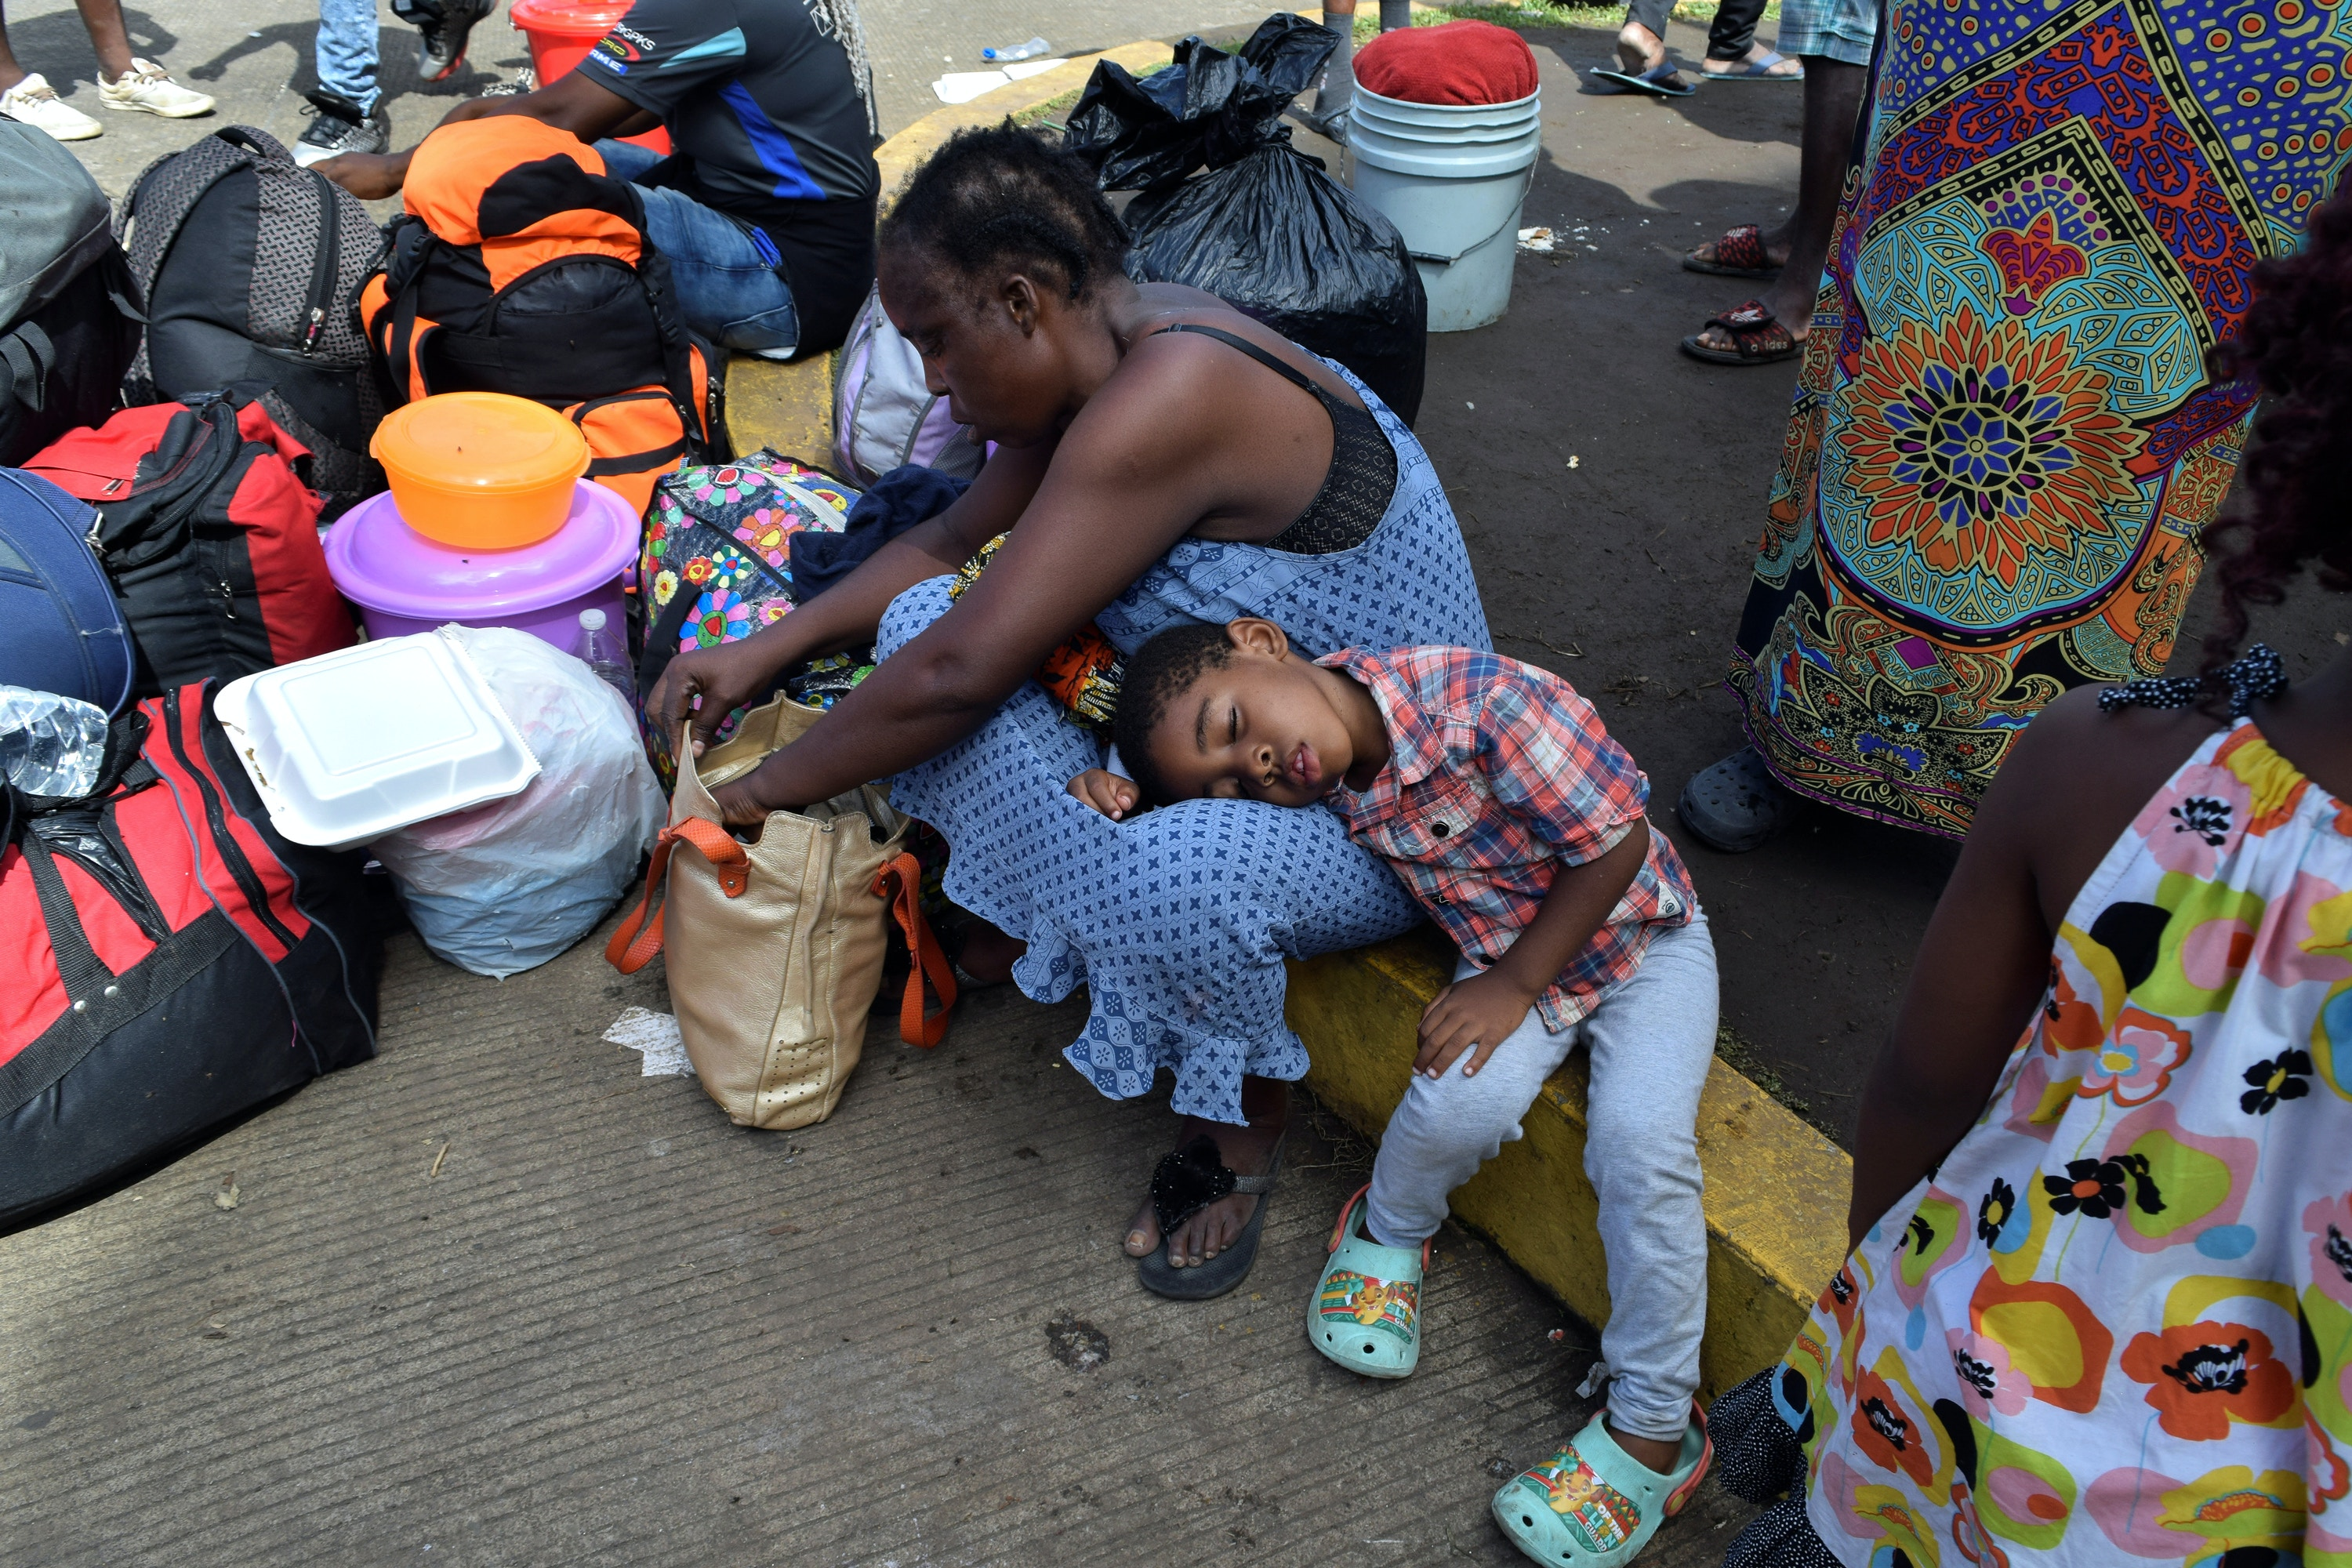 Migrants from Cameroon rest while waiting with other migrants from Africa and Haiti to enter the Siglo XXI immigrant detention center to request humanitarian visas, issued by the Mexican government, to cross the country towards the United States, in Tapachula, Mexico June 27, 2019. REUTERS/Jose Torres - RC1EF0DDFA90